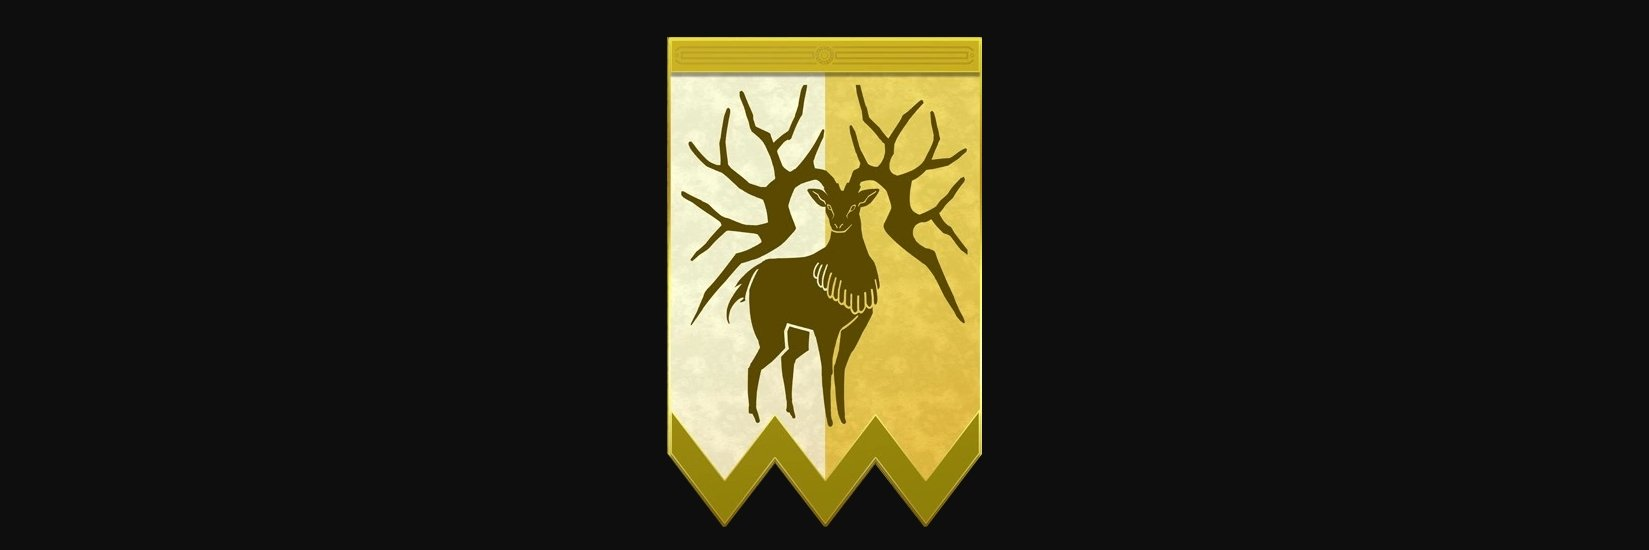 Fire Emblem Three Houses Golden Deer Characters Students